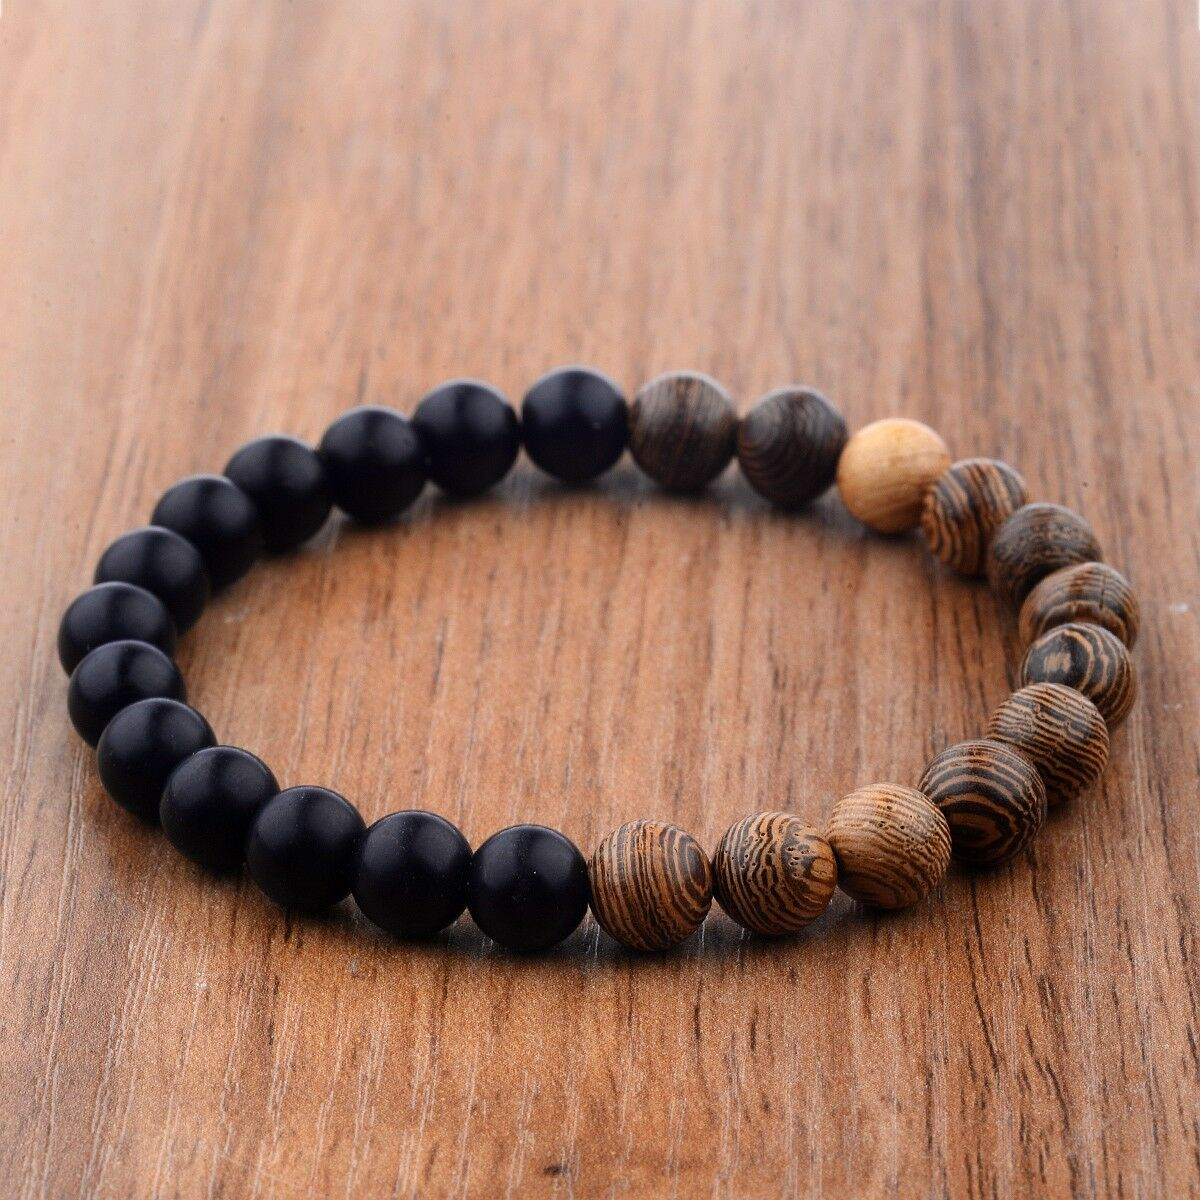 Wood beads + black natural stone